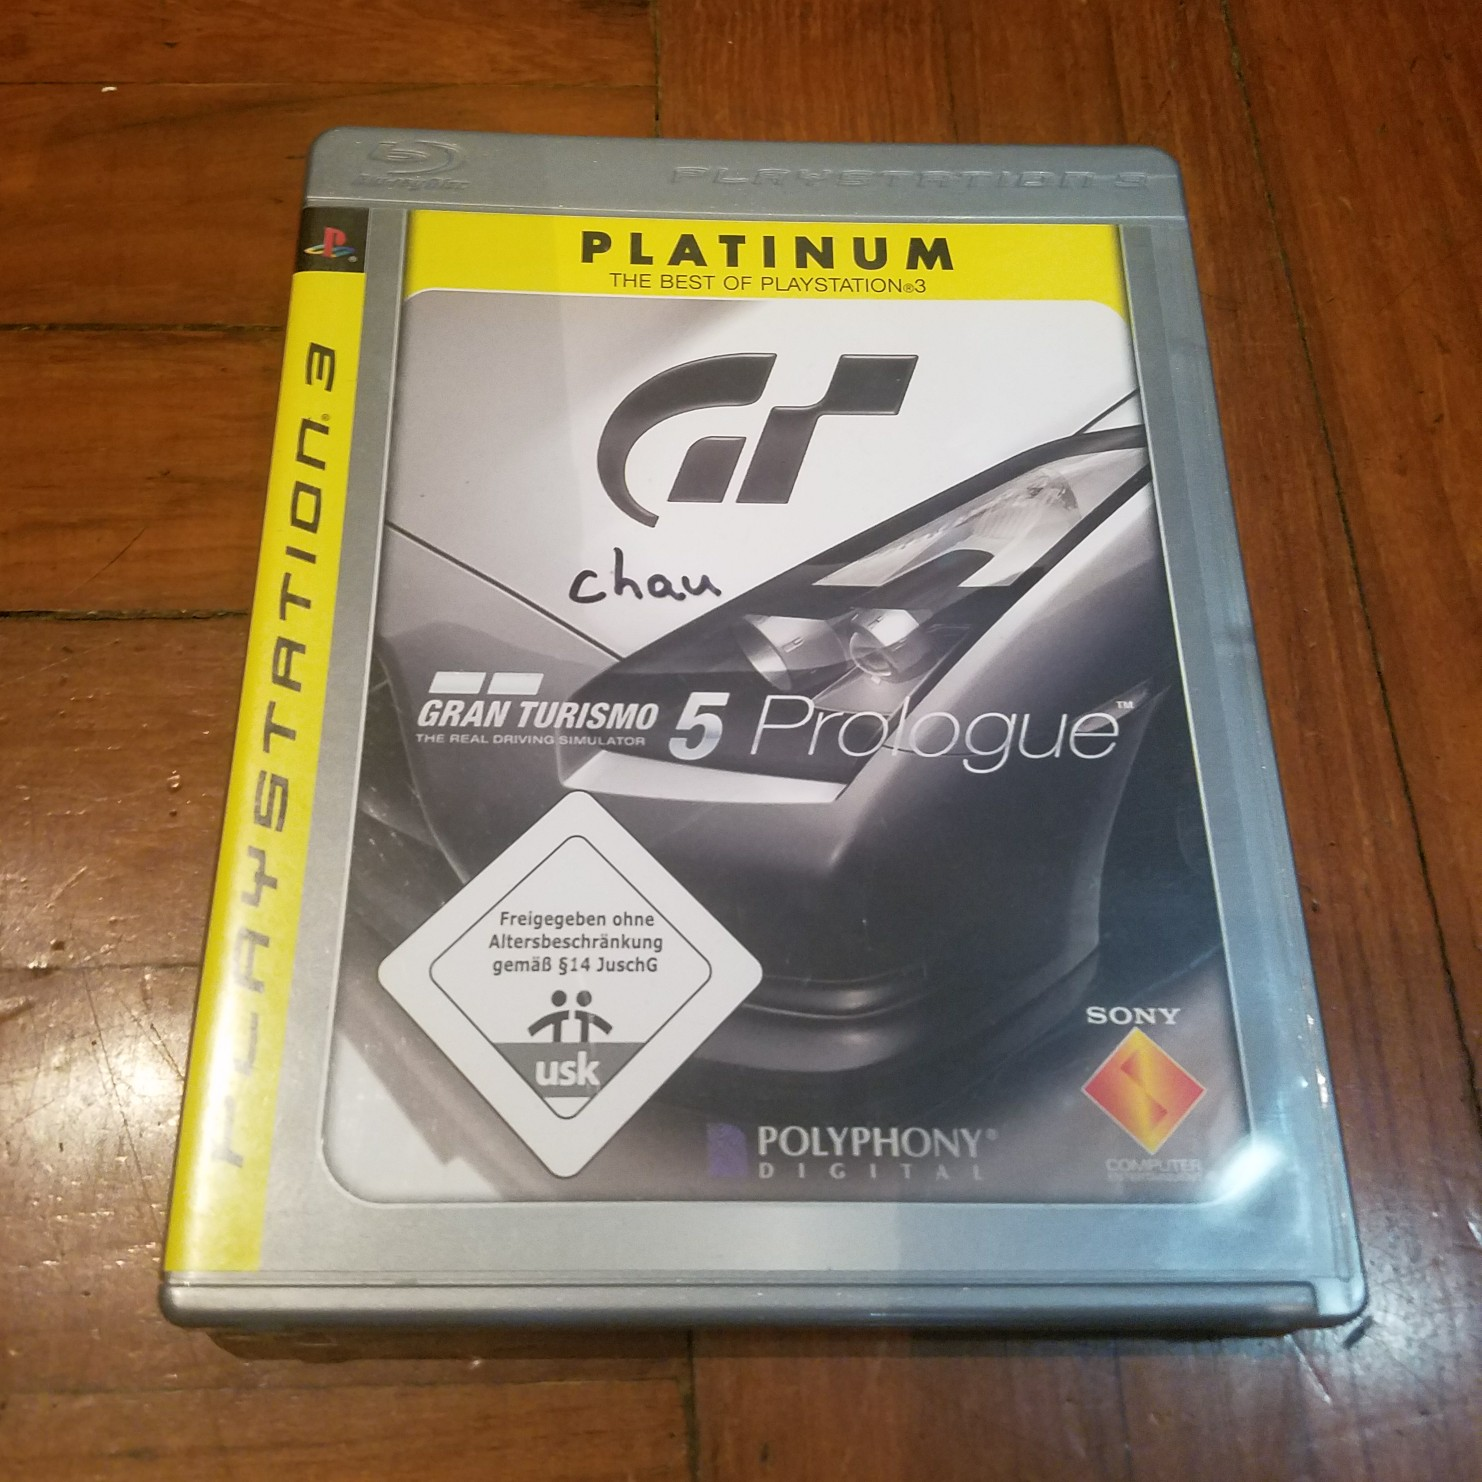 PS3 Video Game image